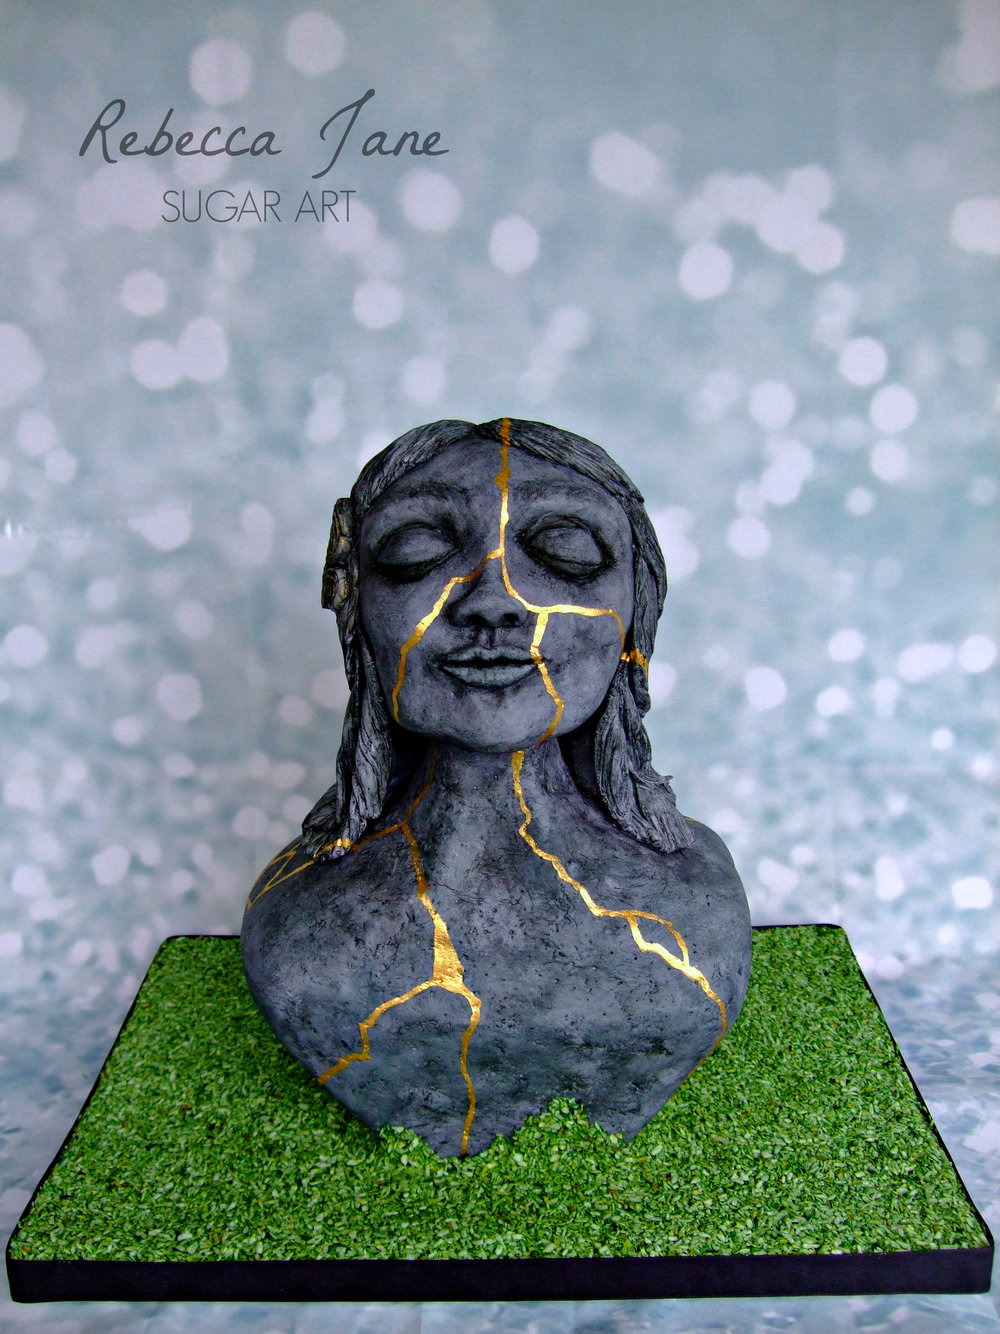 Rebecca Jane Sugar Art - Kintsugi bust stone gold sculpture cake